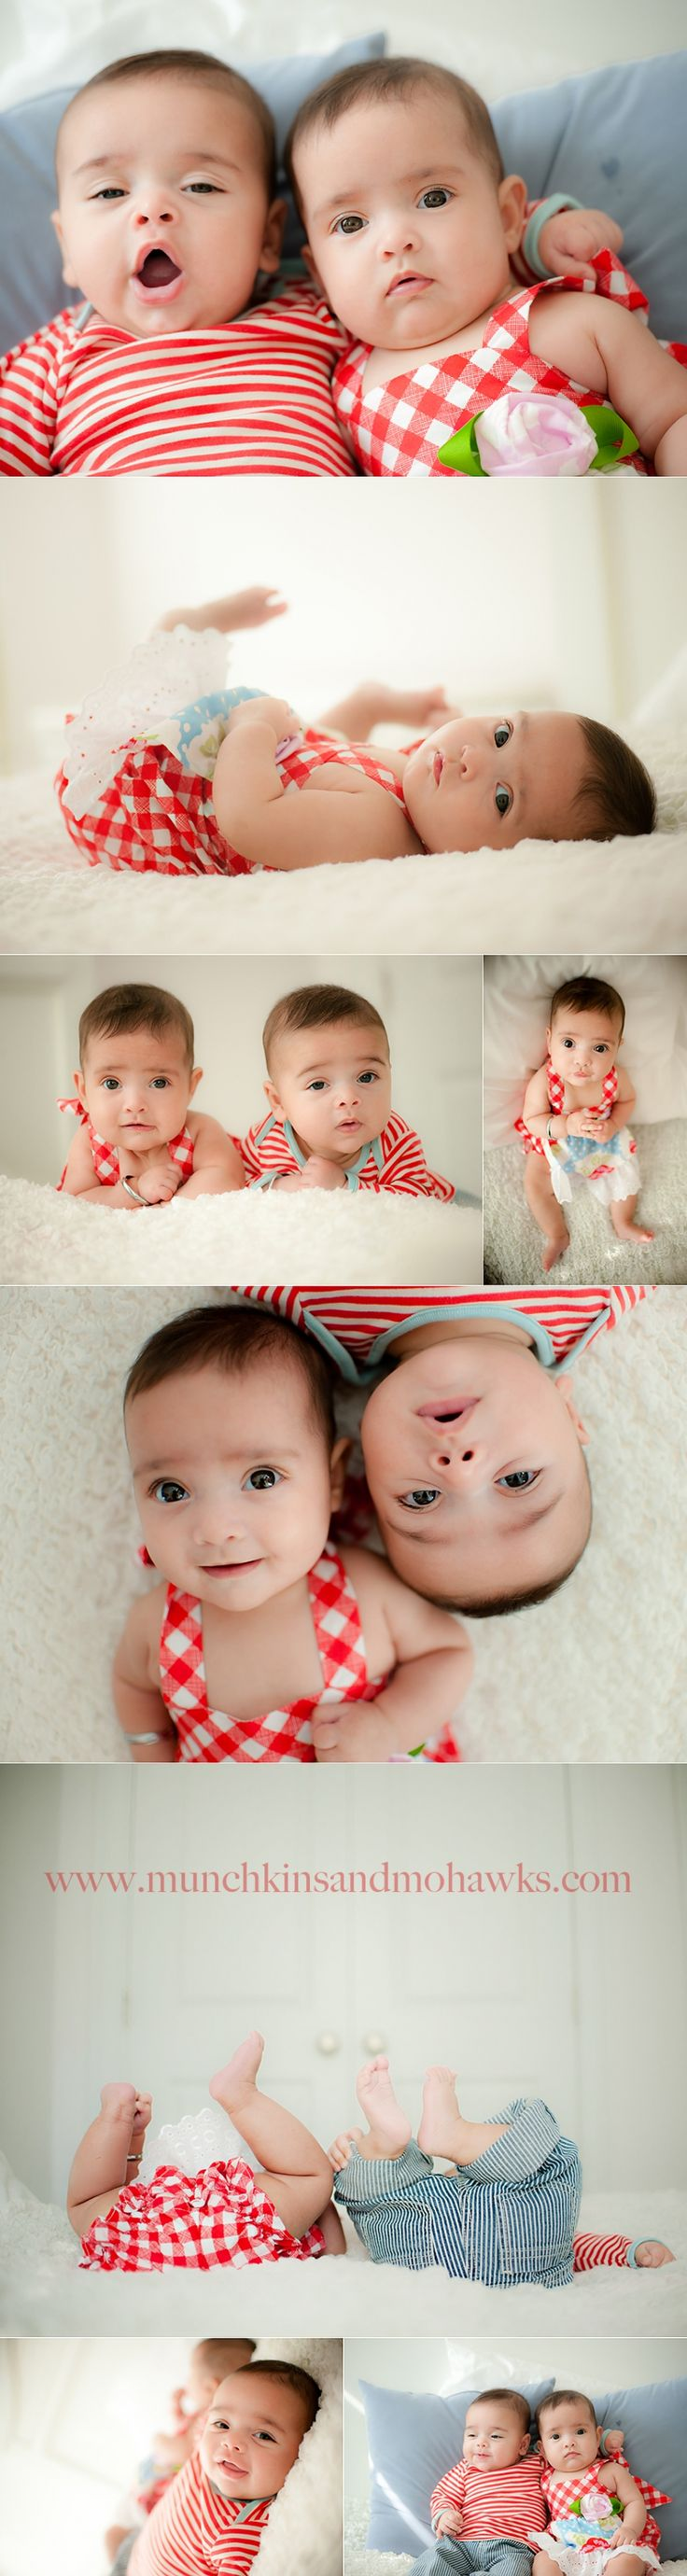 5 month old twin babies www.munchkinsandmohawks.com/blog